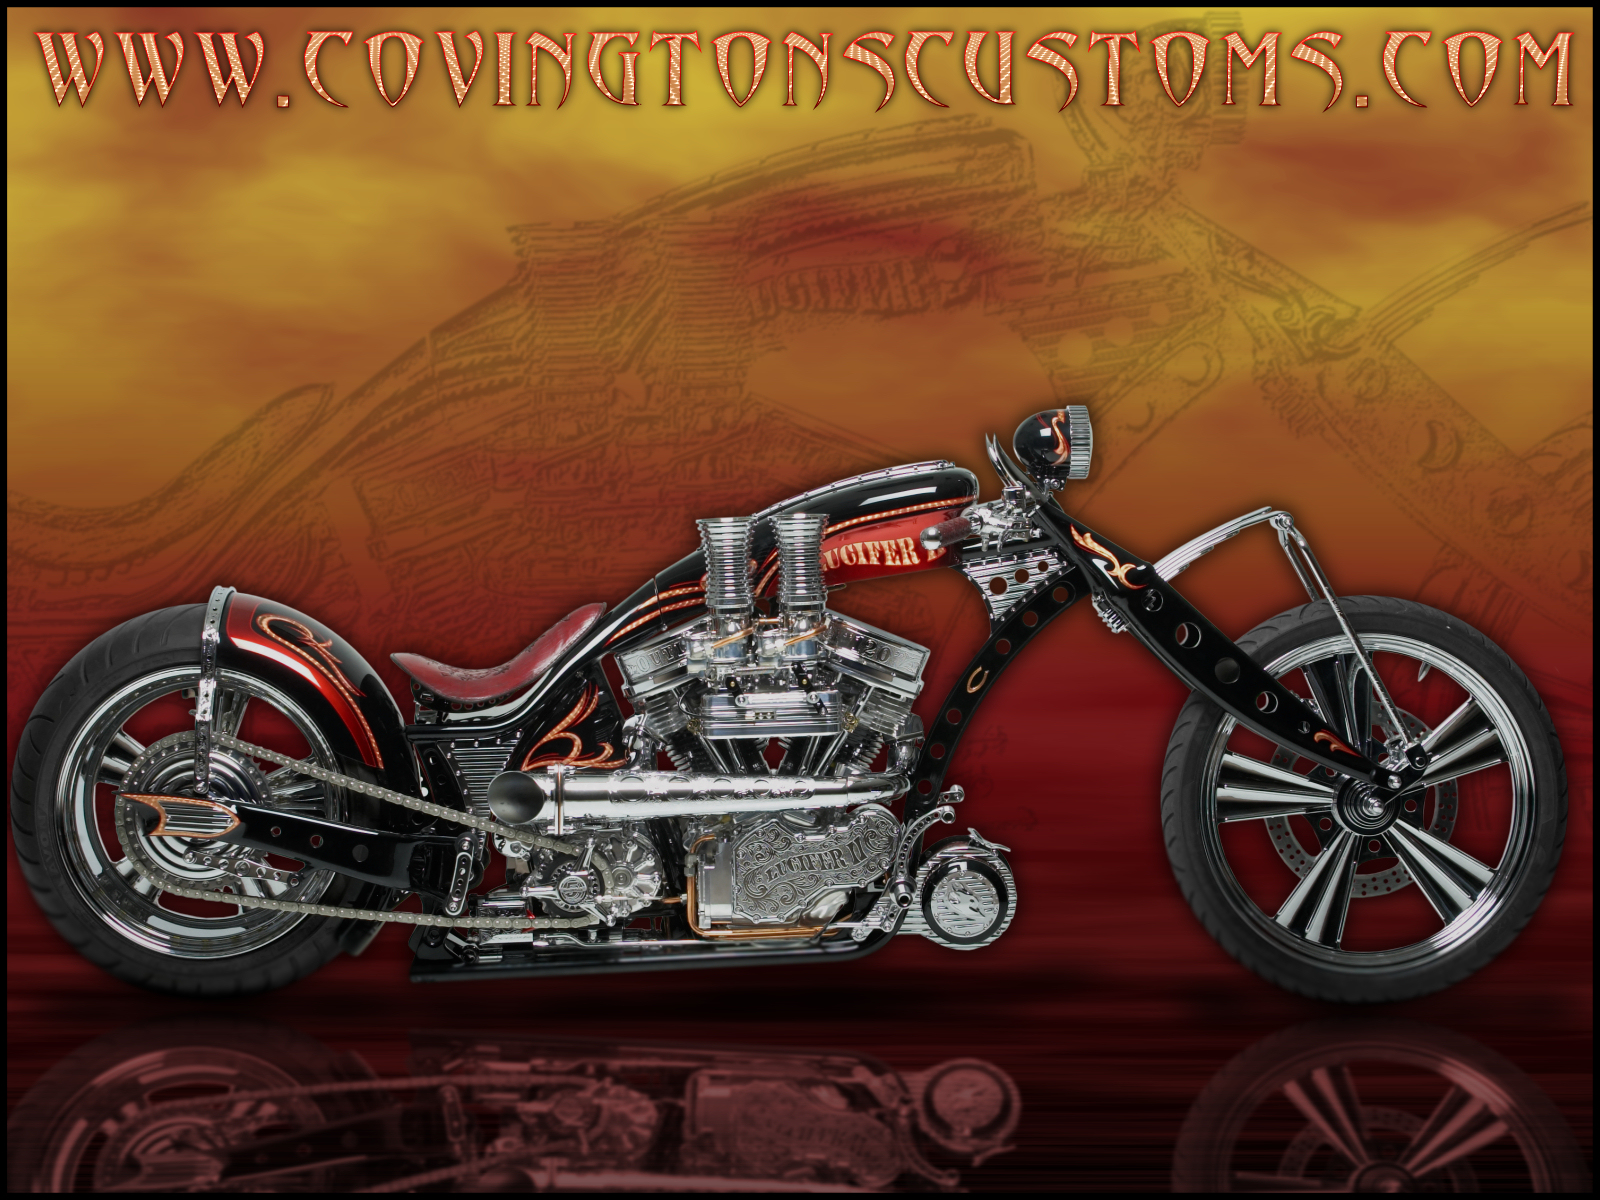 Covingtons Custom Motorcycle WallPaper 30jpg